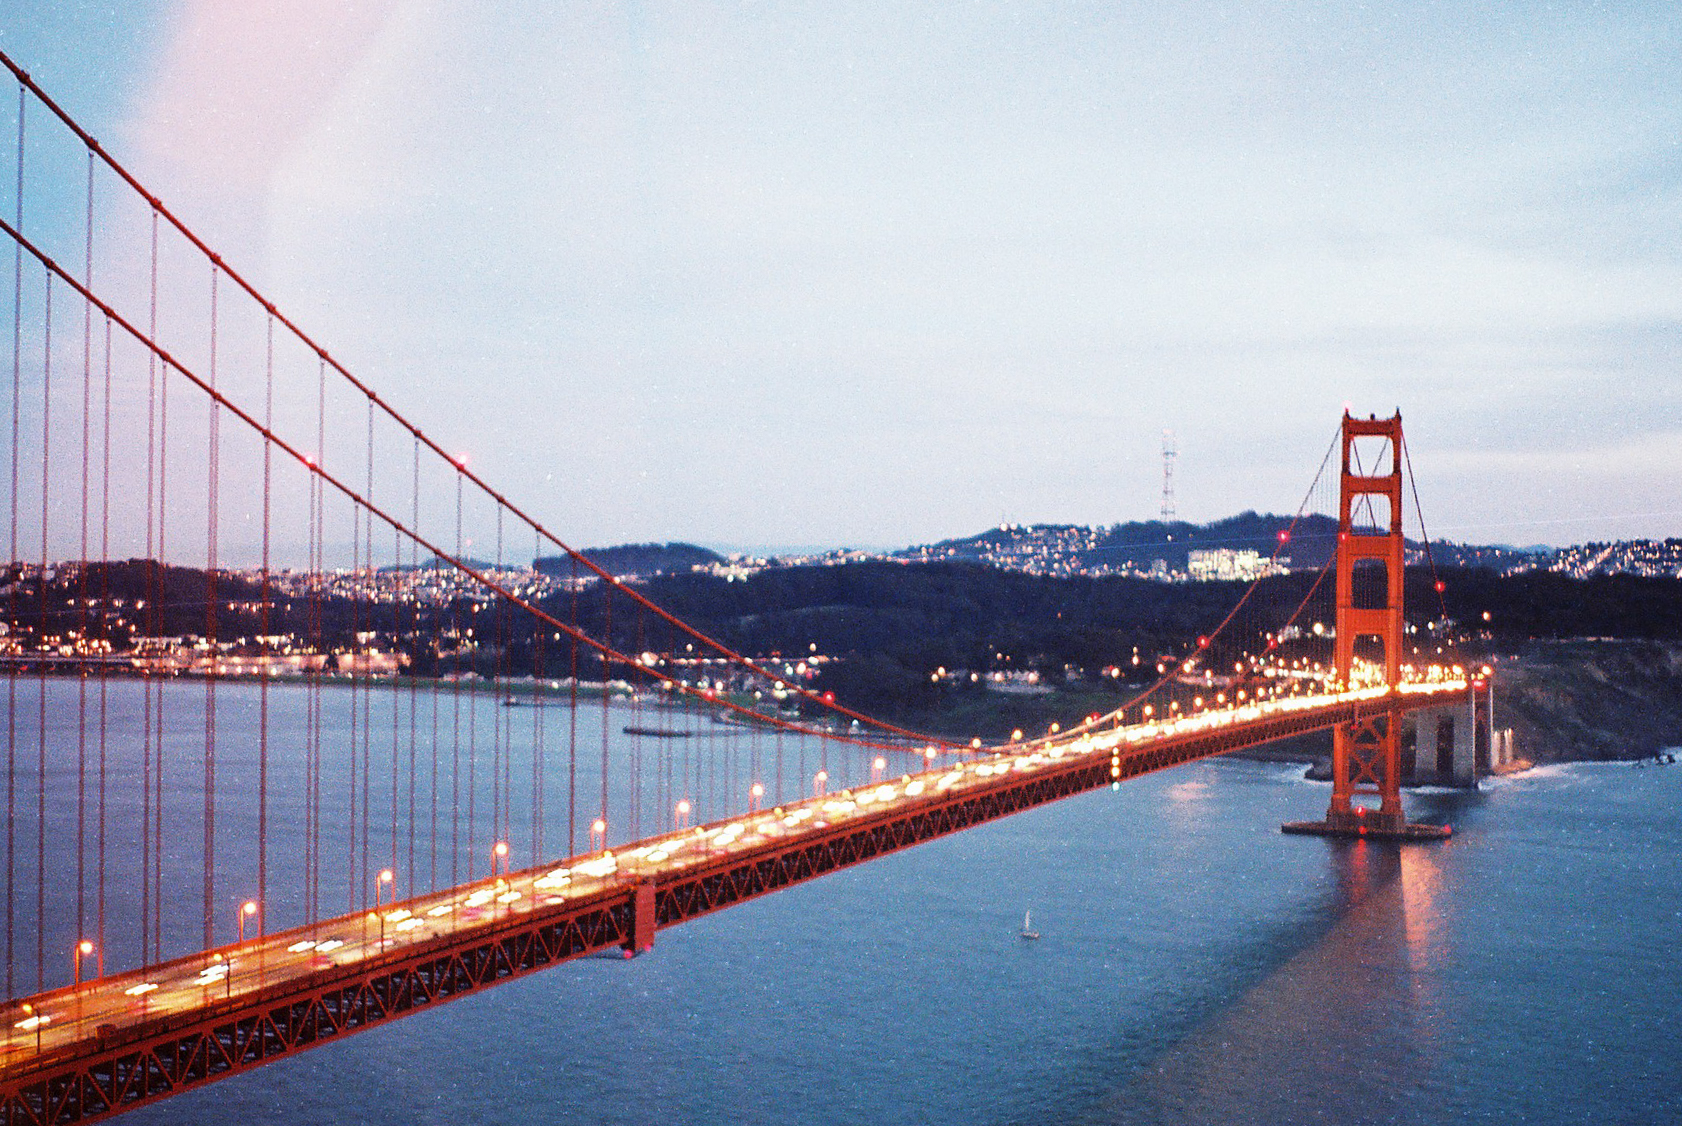 California SF Golden Gate Lights Analogue Photo Journal